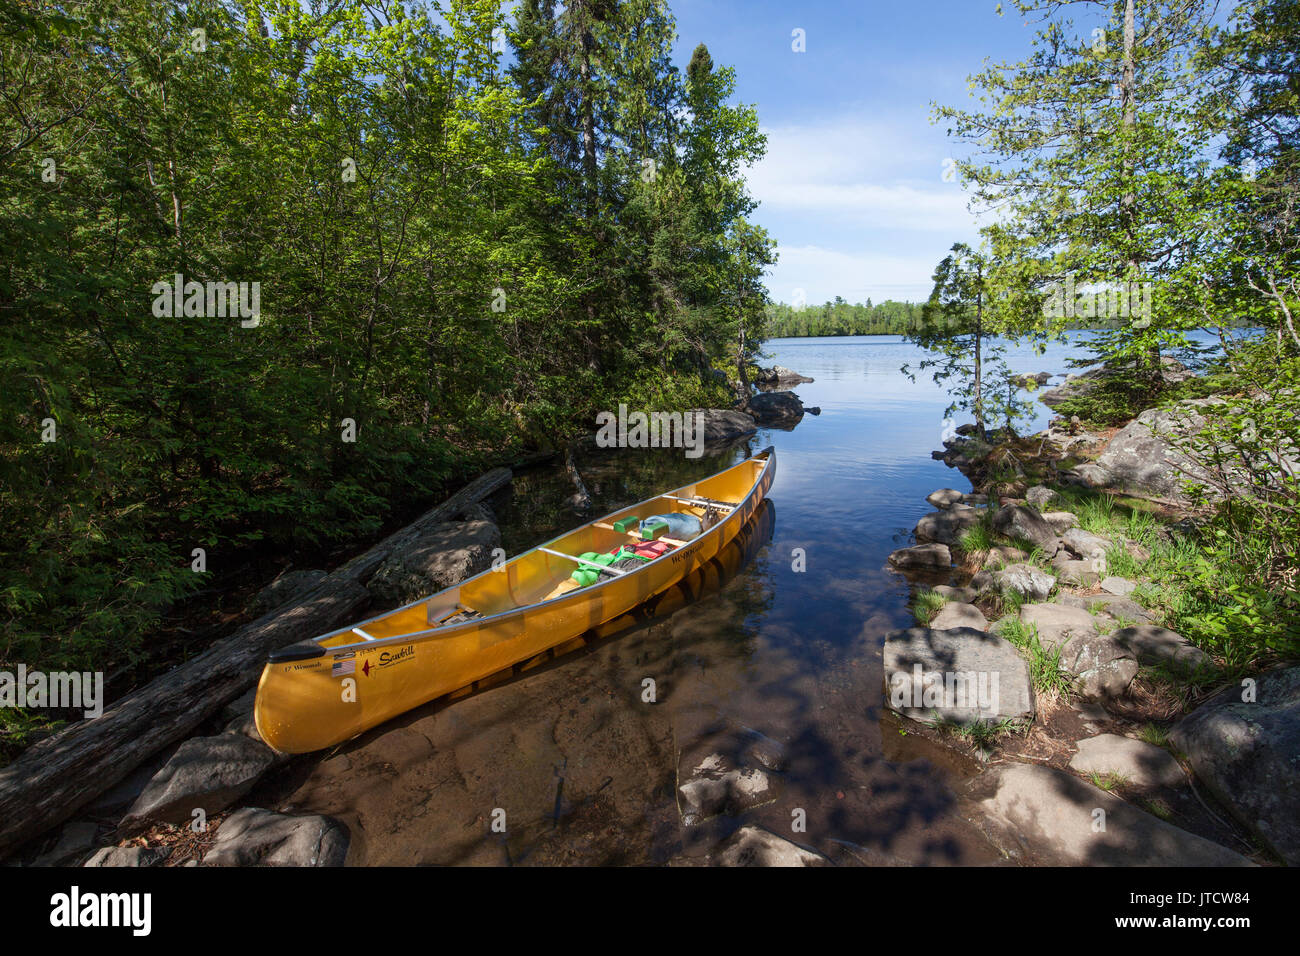 A canoe on a lake in the Boundary Waters Canoe Area Wilderness (BWCAW). - Stock Image